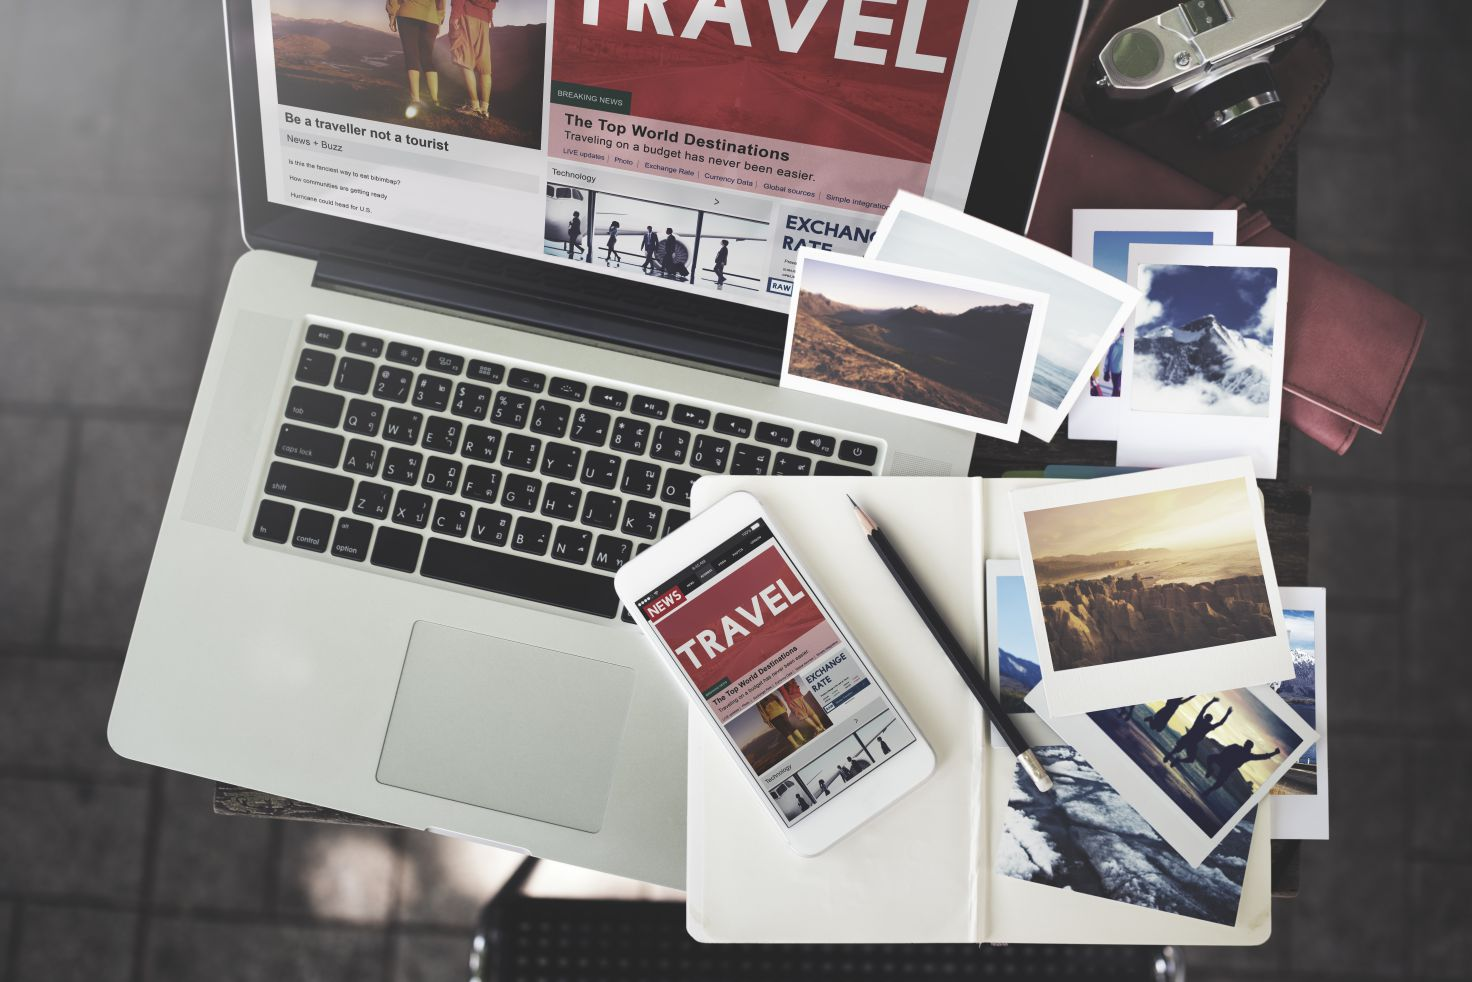 How To Improve Our Travel Writing Blog?